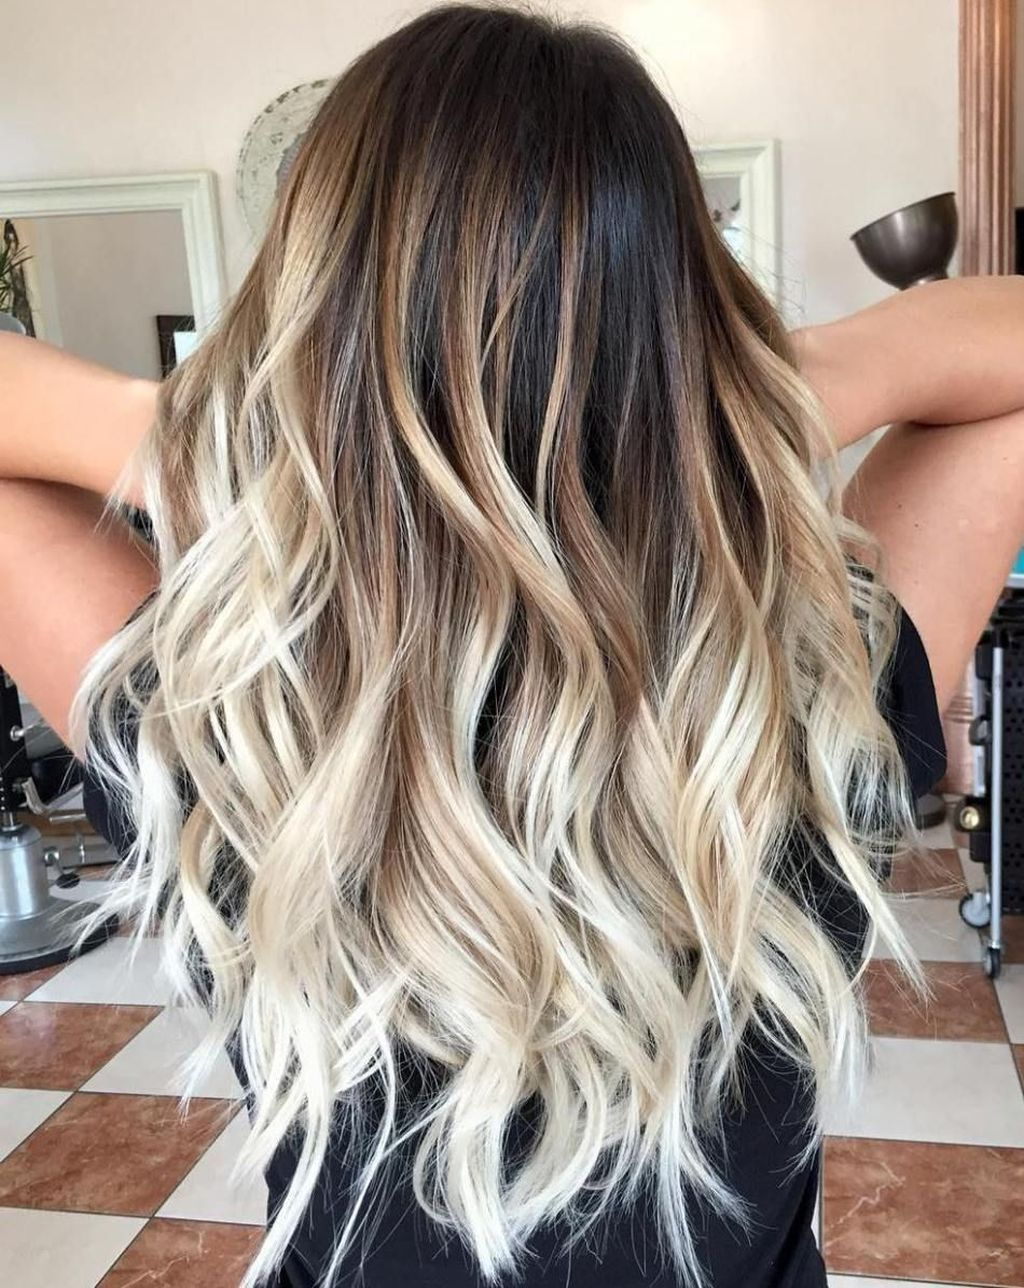 50 impressive blonde balayage hairstyles ideas in year 2019